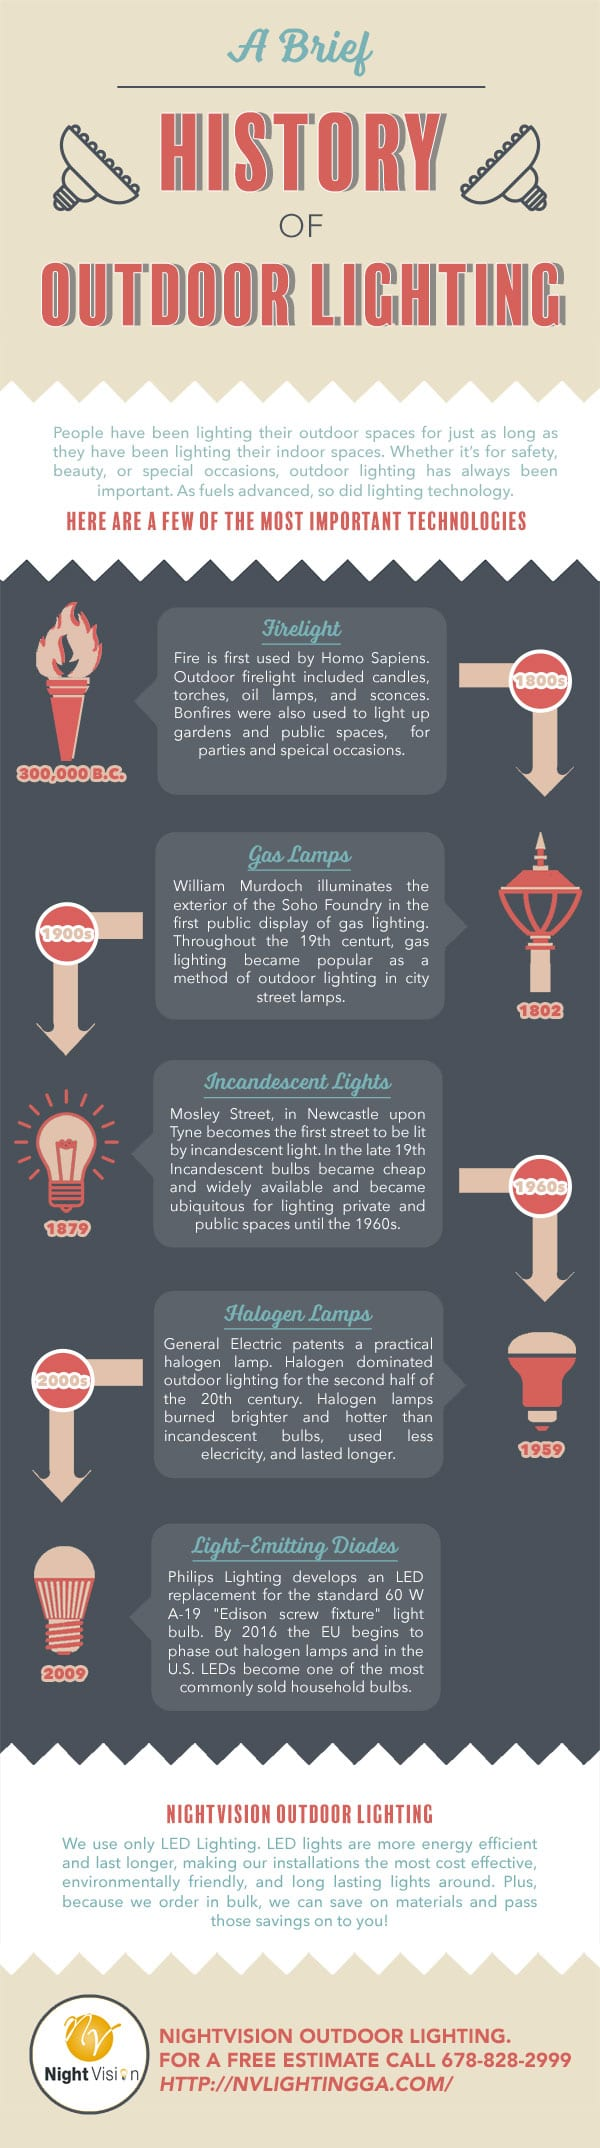 Brief History of Outdoor Lighting [infographic]